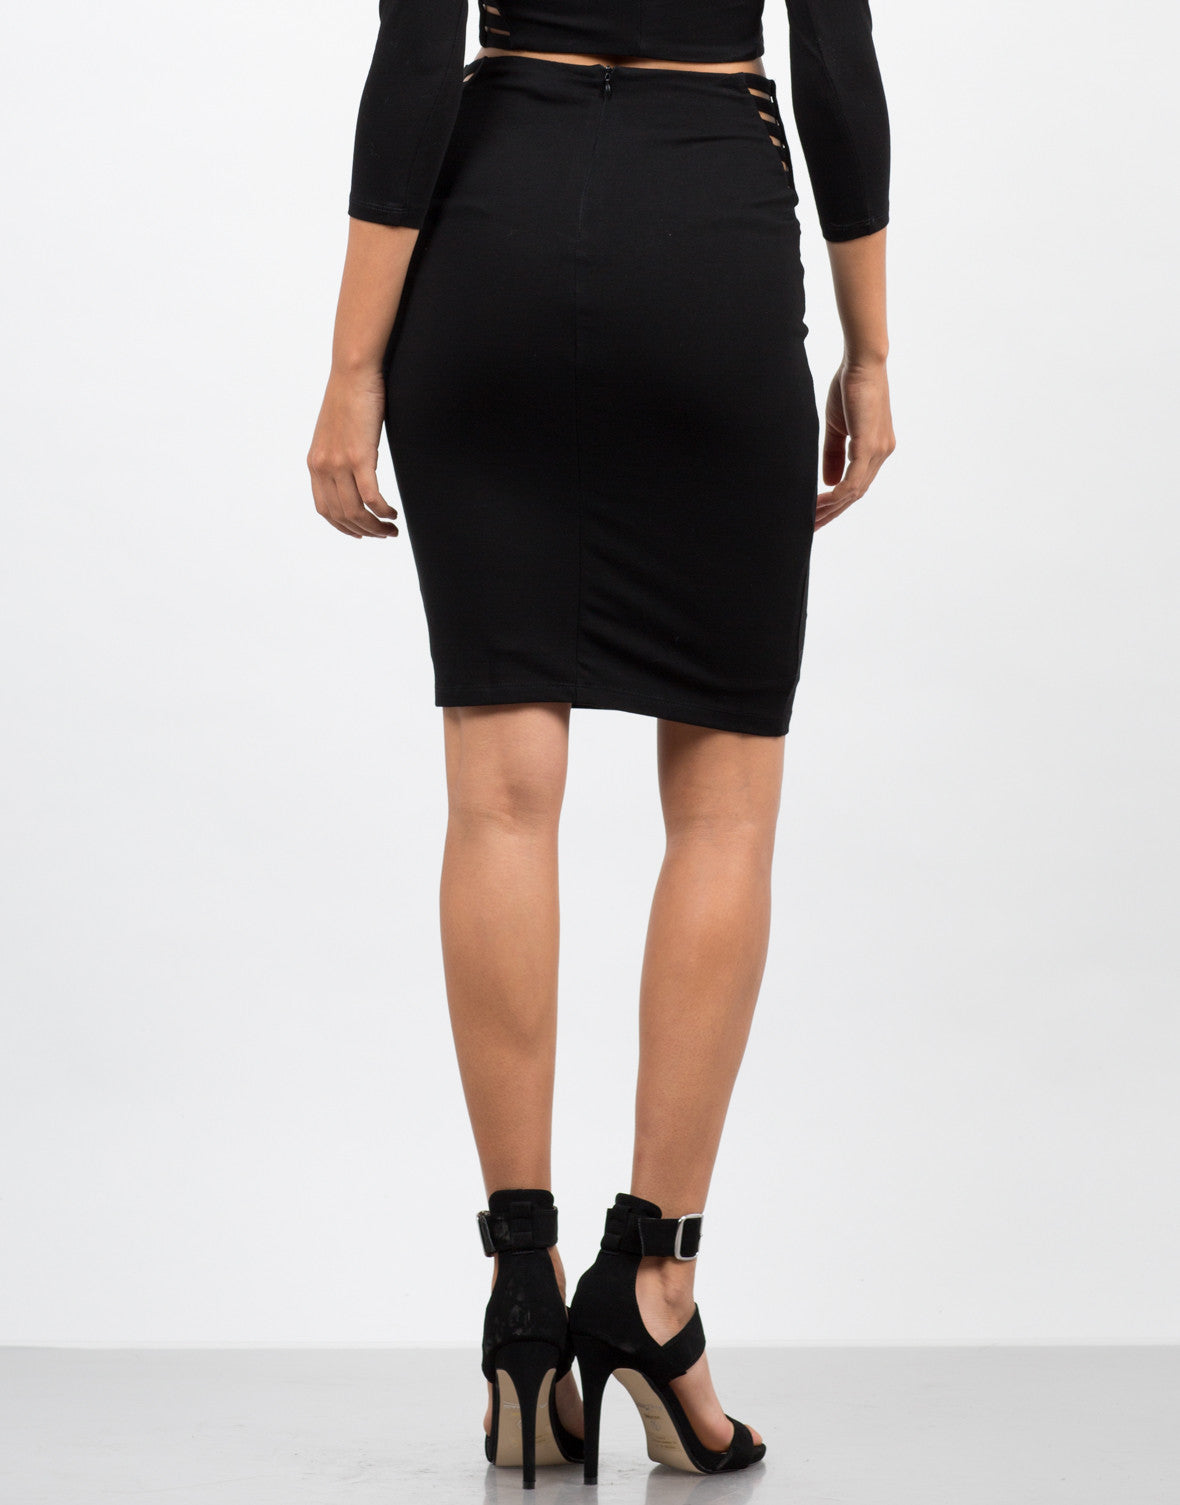 Back View of Caged Sides Pencil Skirt